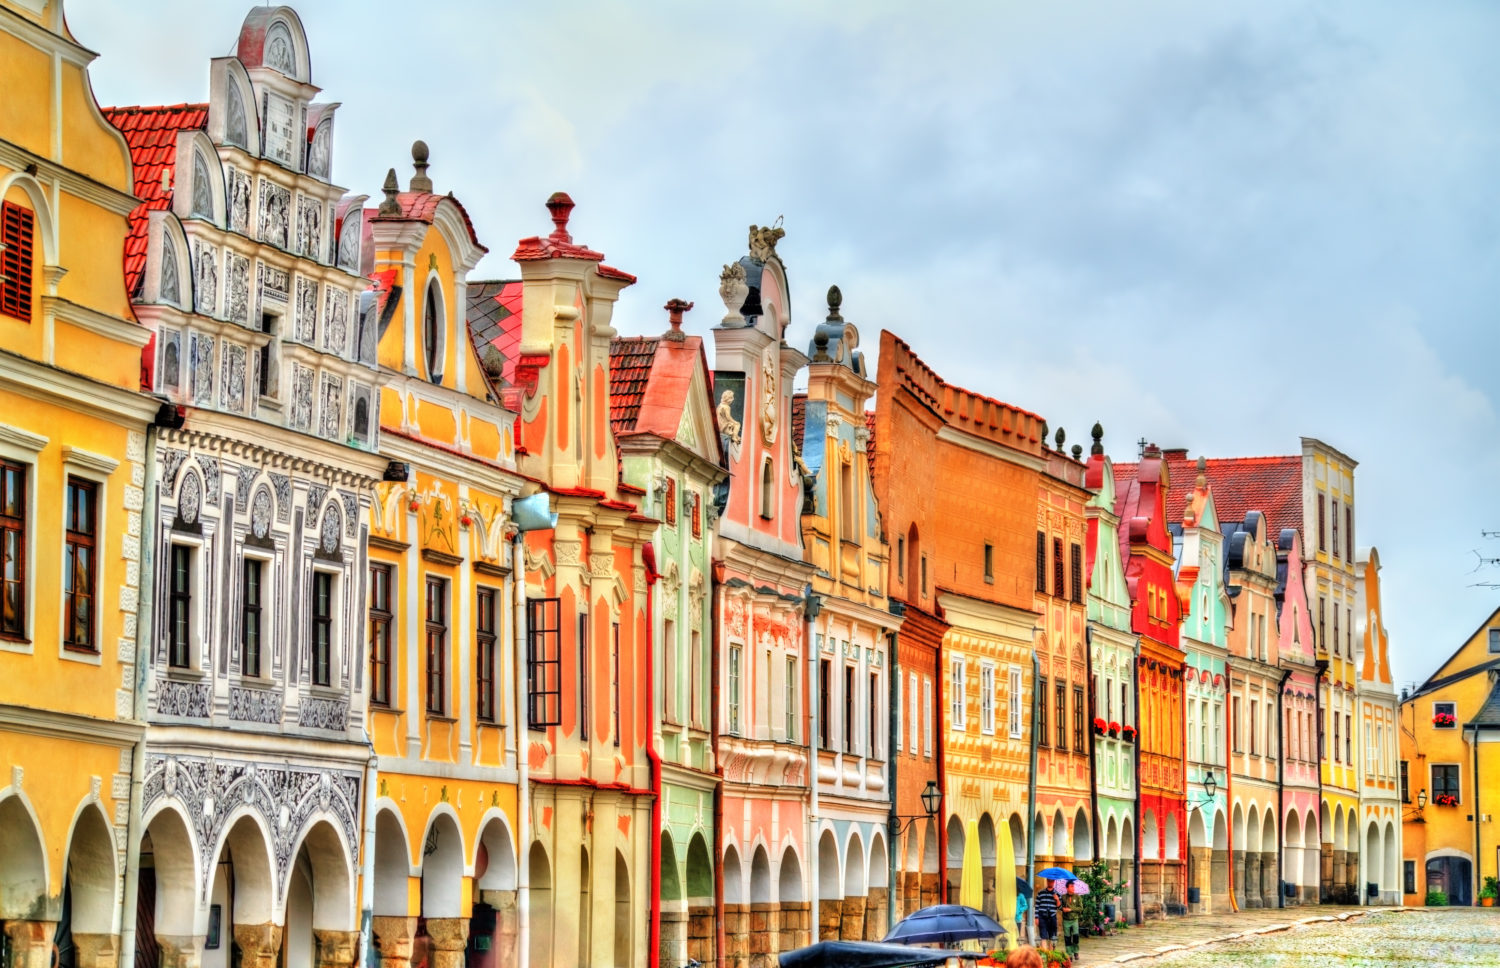 Row of colourful houses in Telc, Czech Republic during a road trip from Prague to Budapest